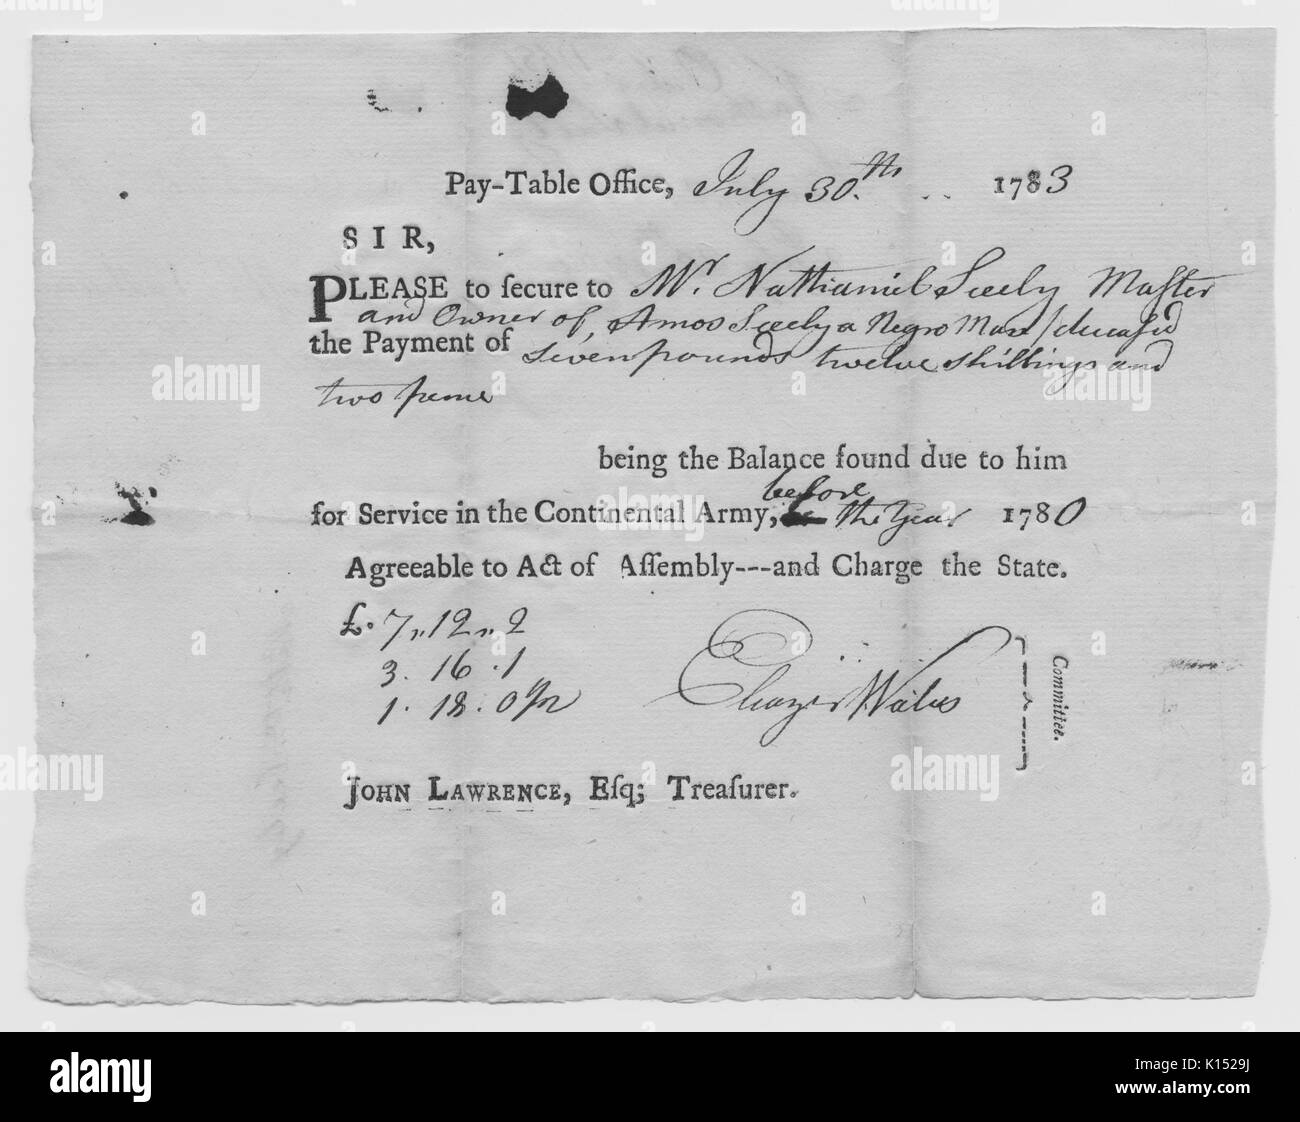 A request for compensation for the loss of a slave named Amos Seely, who was killed during the Revolutionary War, to be paid to his owner, Nathaniel Seely, 1783. From the New York Public Library. - Stock Image